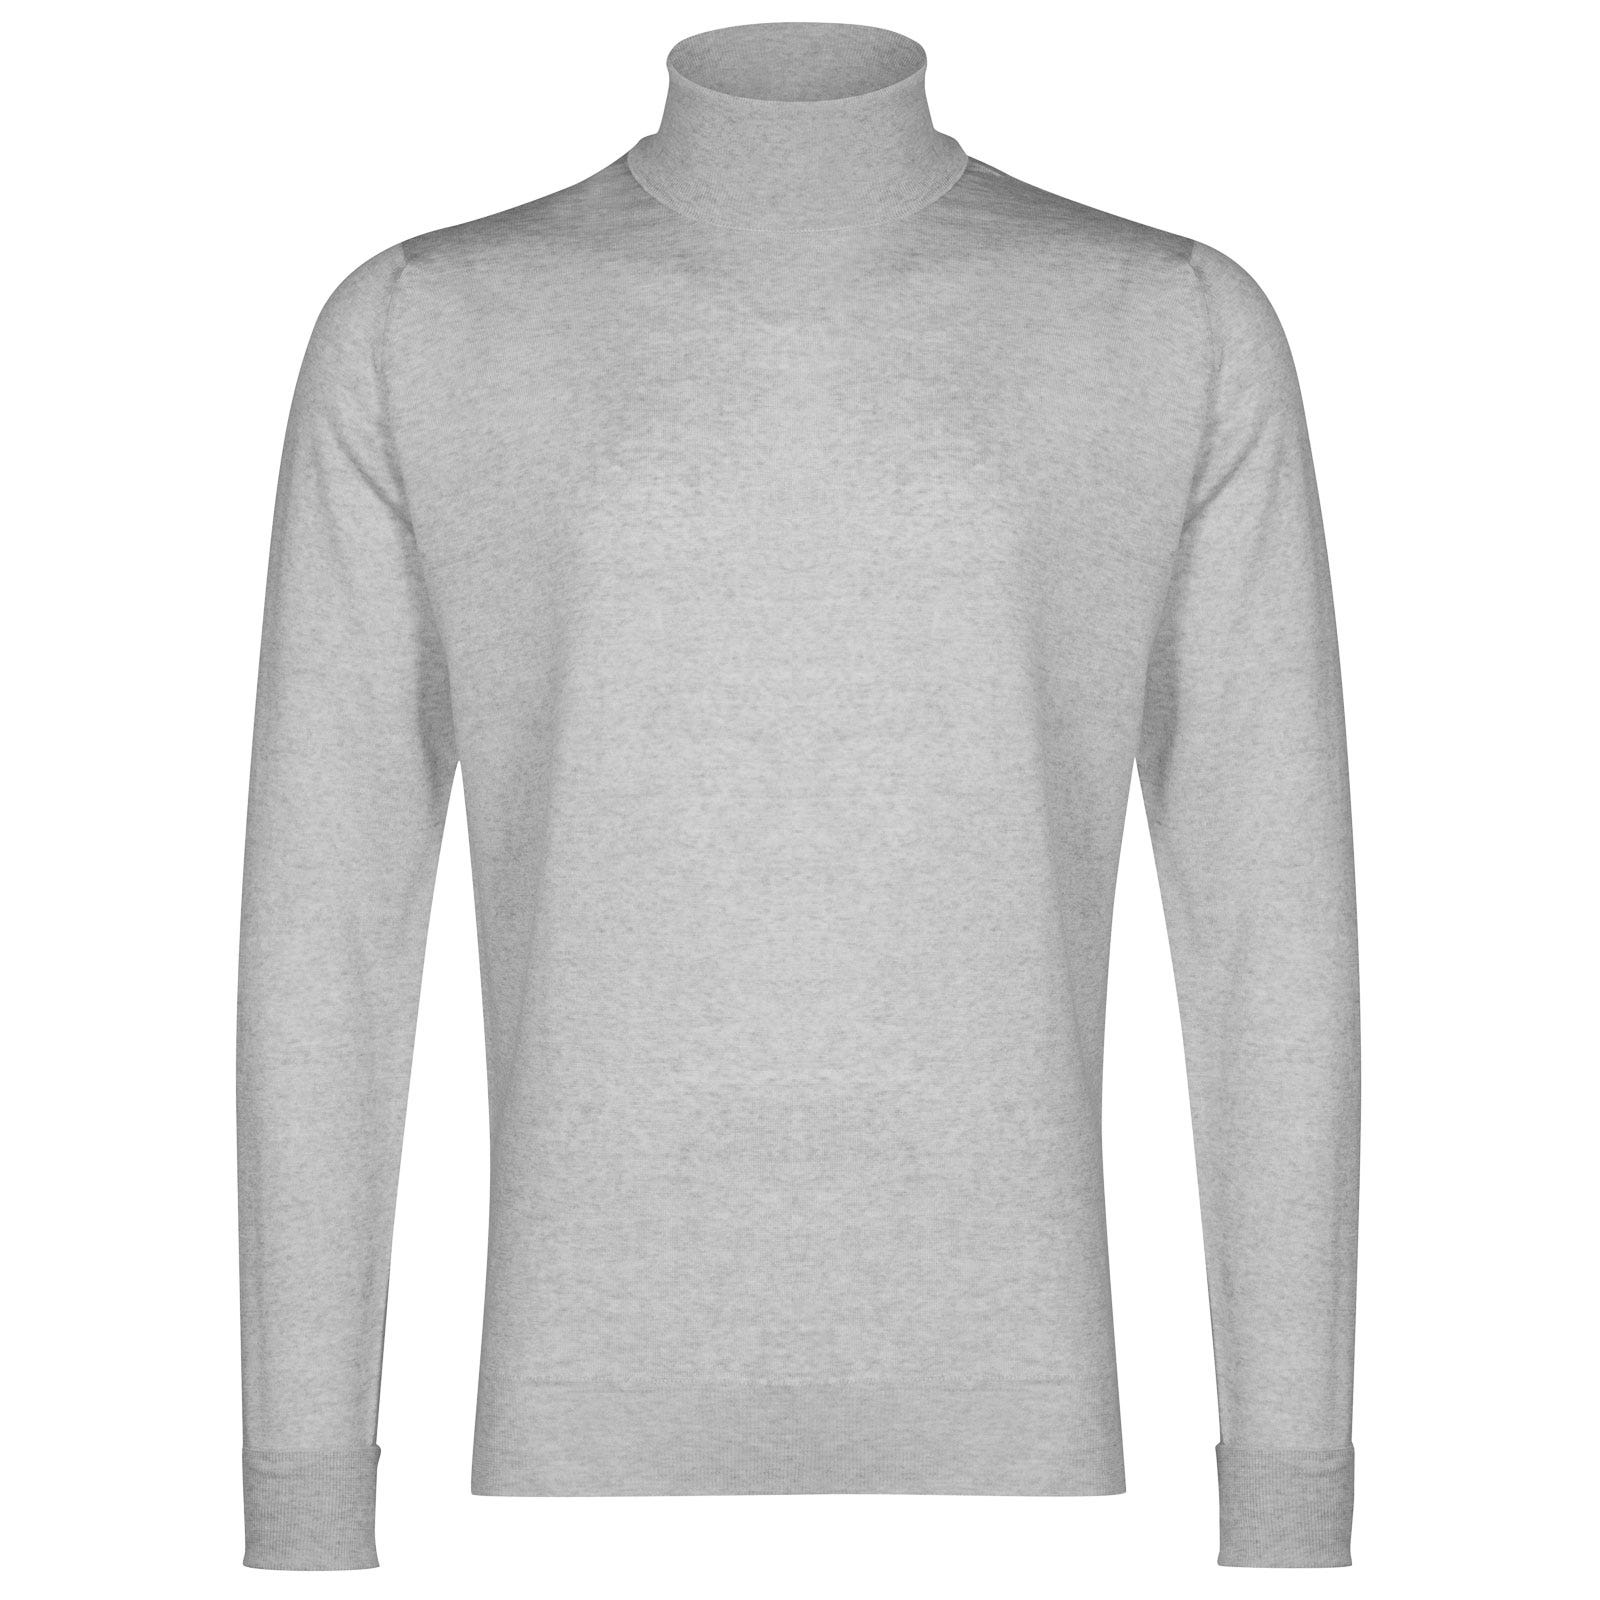 John Smedley richards Merino Wool Pullover in Bardot Grey-XXL